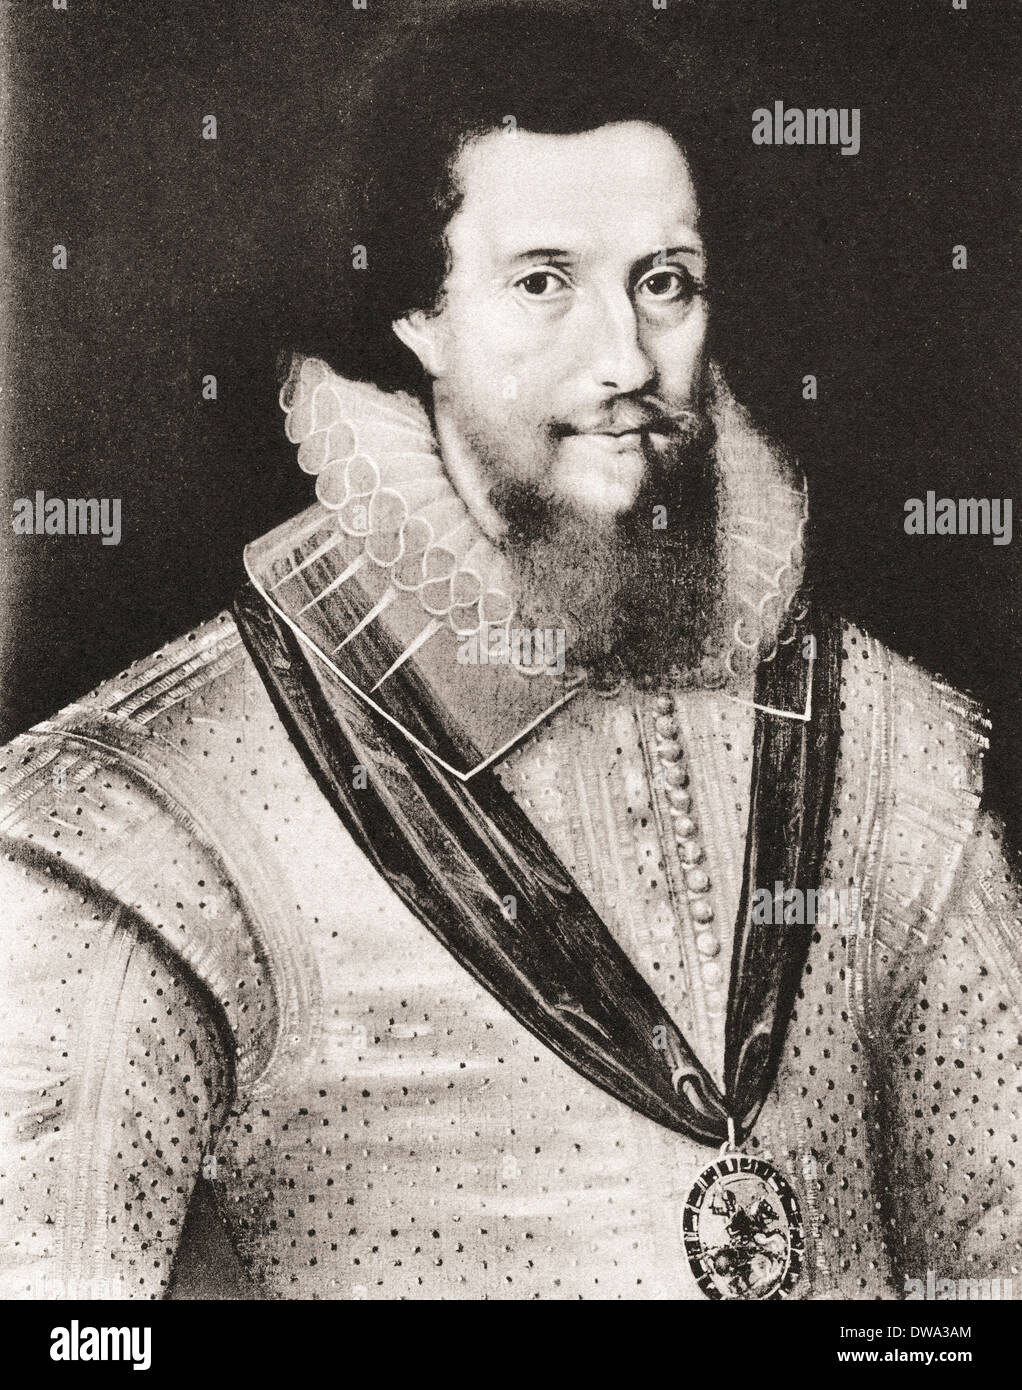 Robert Devereux, 2nd Earl of Essex, 1565- 1601. English nobleman and a favourite of Elizabeth I. After a contemporary work. - Stock Image